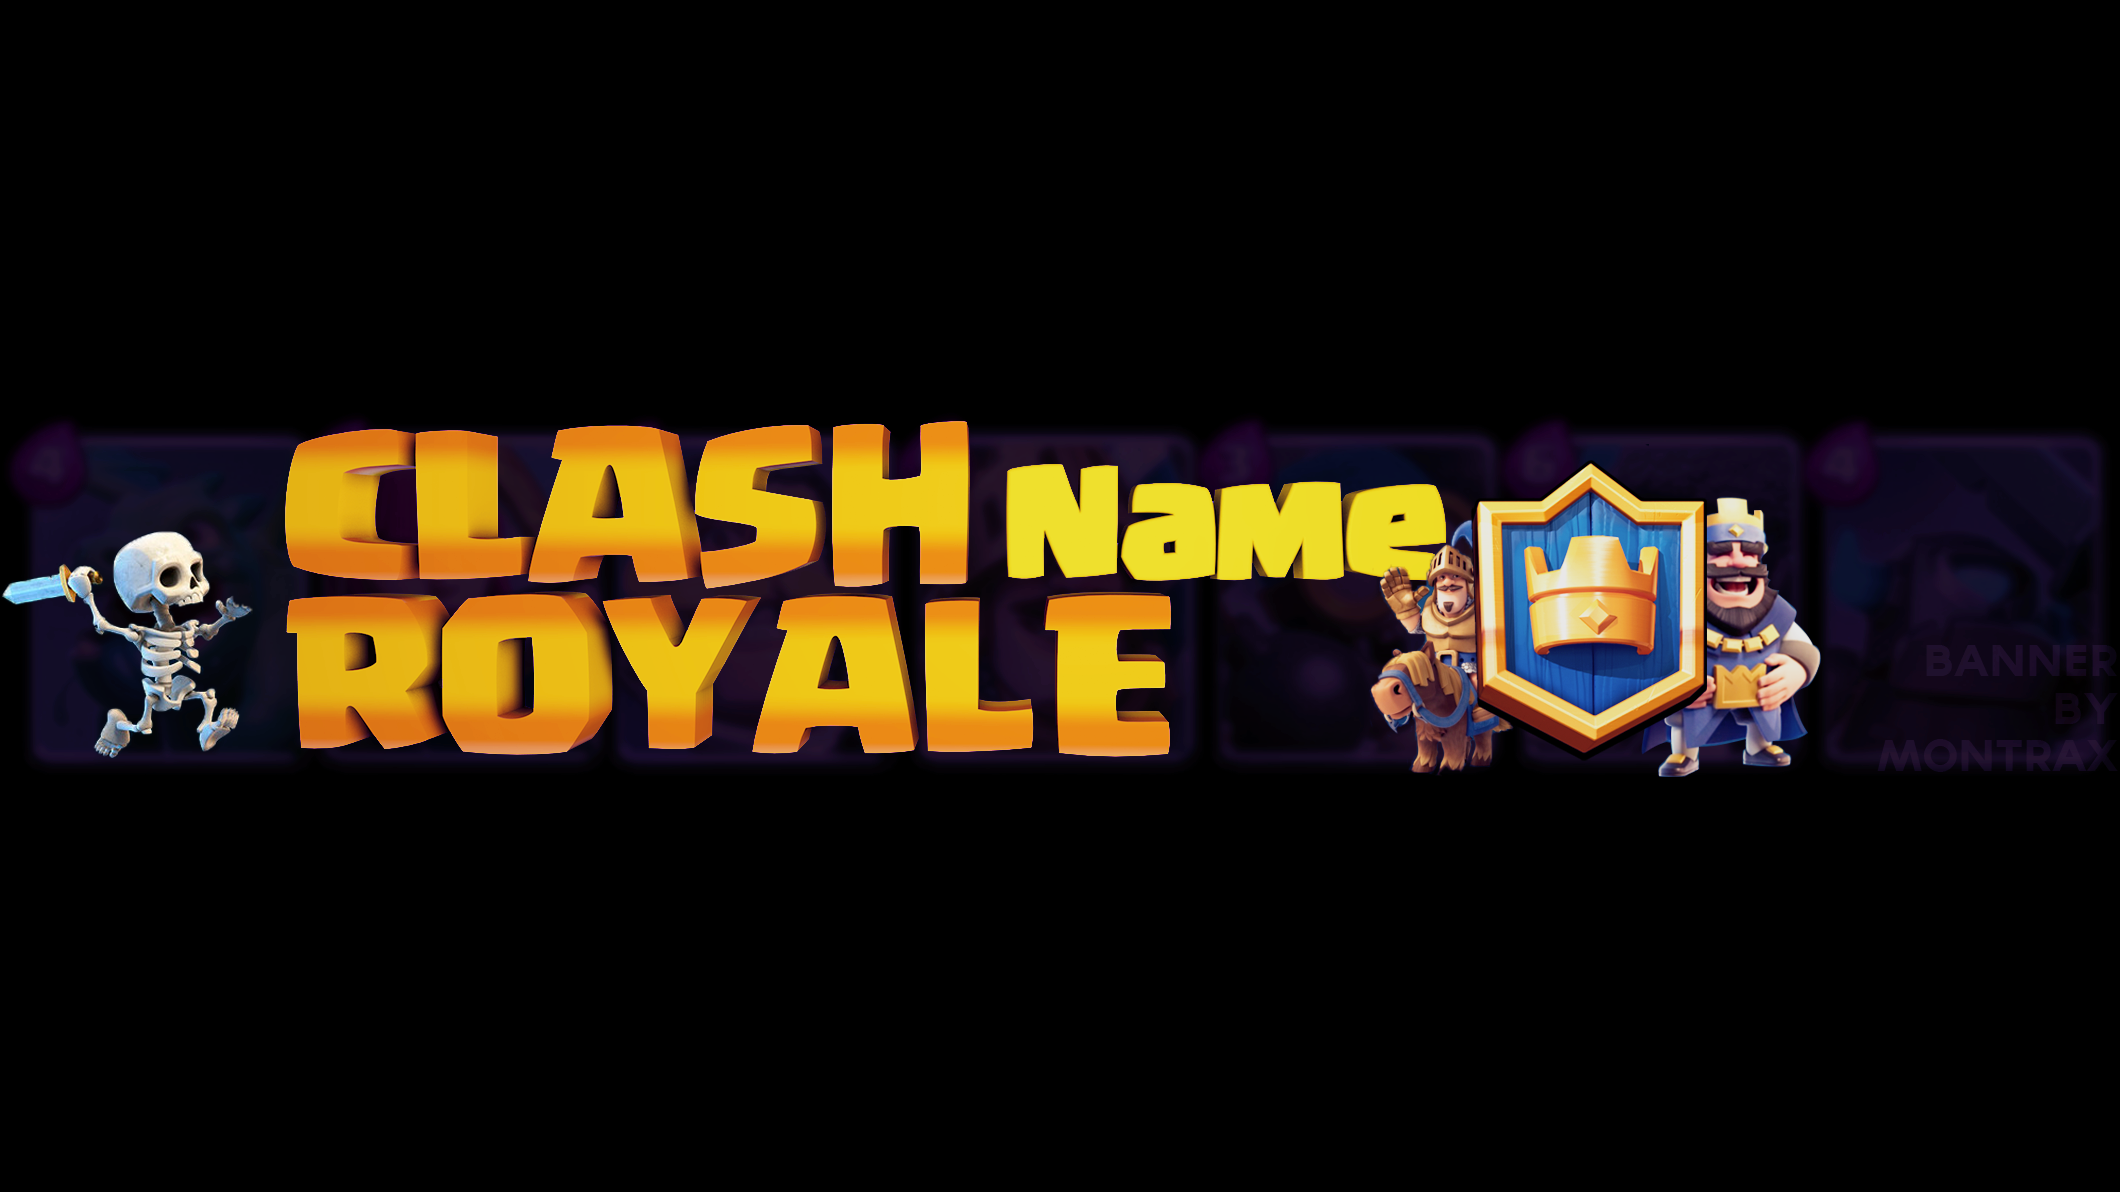 Clash Royale Banner Template By Montrax On Deviantart